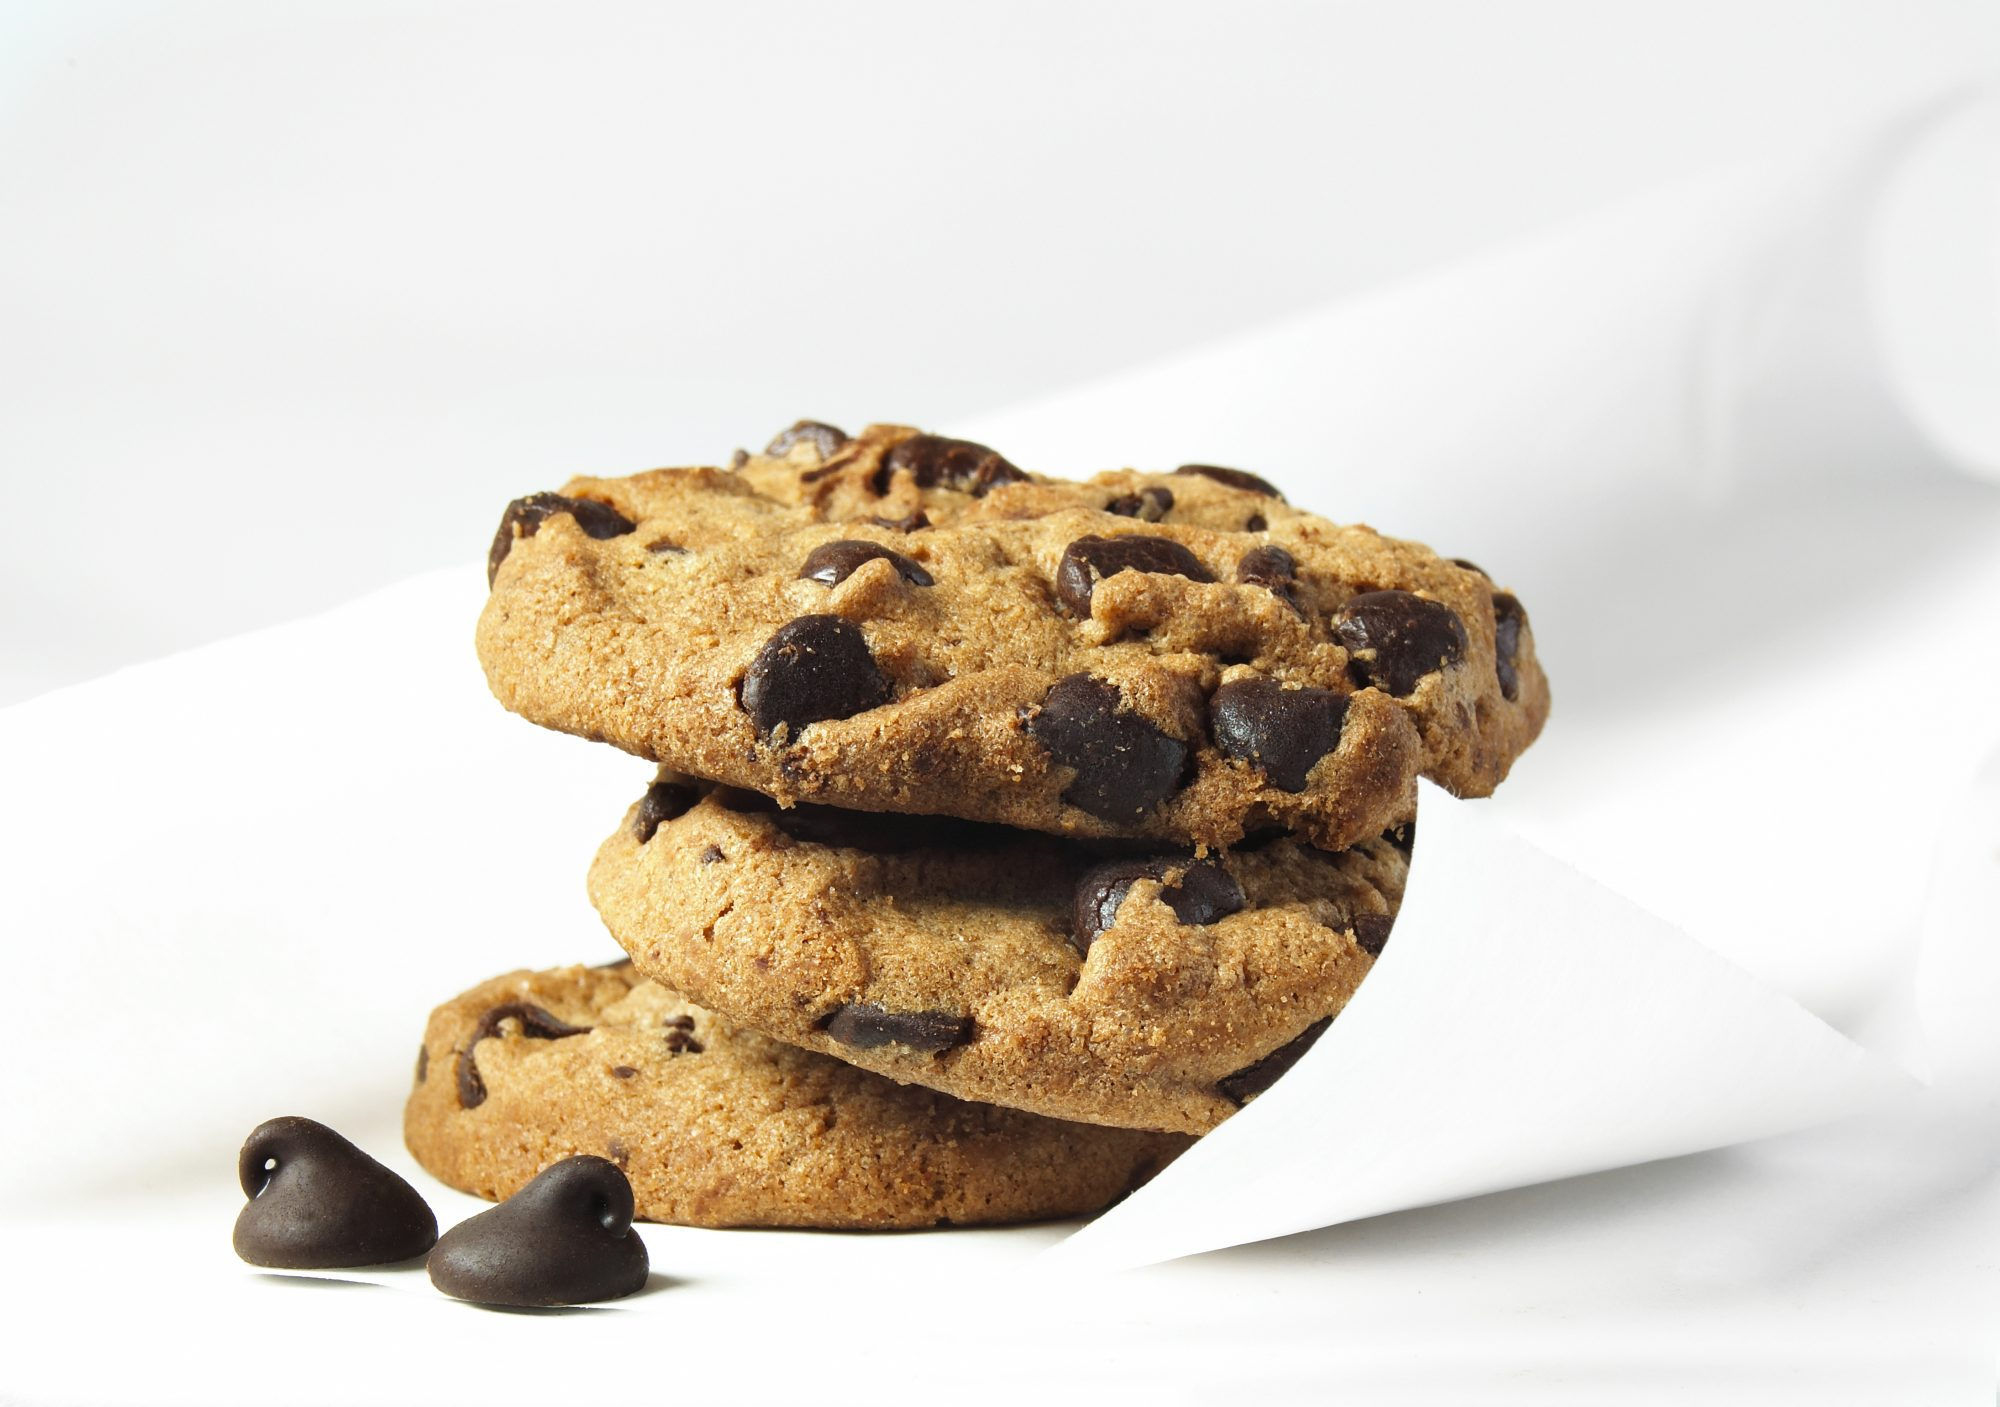 chocolate-chip-cookie-unhealthy-food